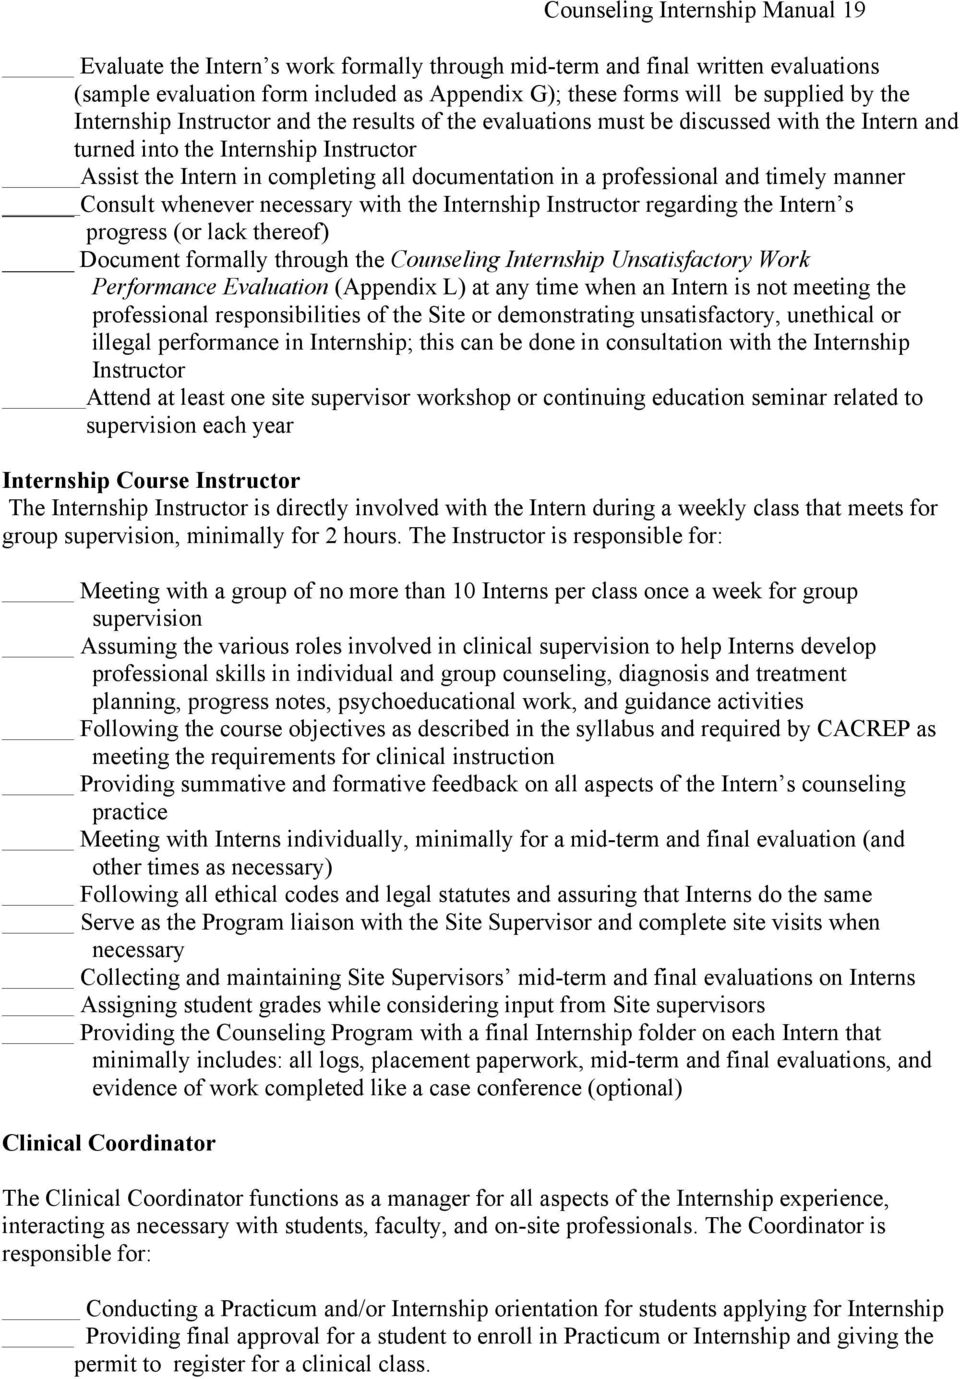 professional and timely manner Consult whenever necessary with the Internship Instructor regarding the Intern s progress (or lack thereof) Document formally through the Counseling Internship